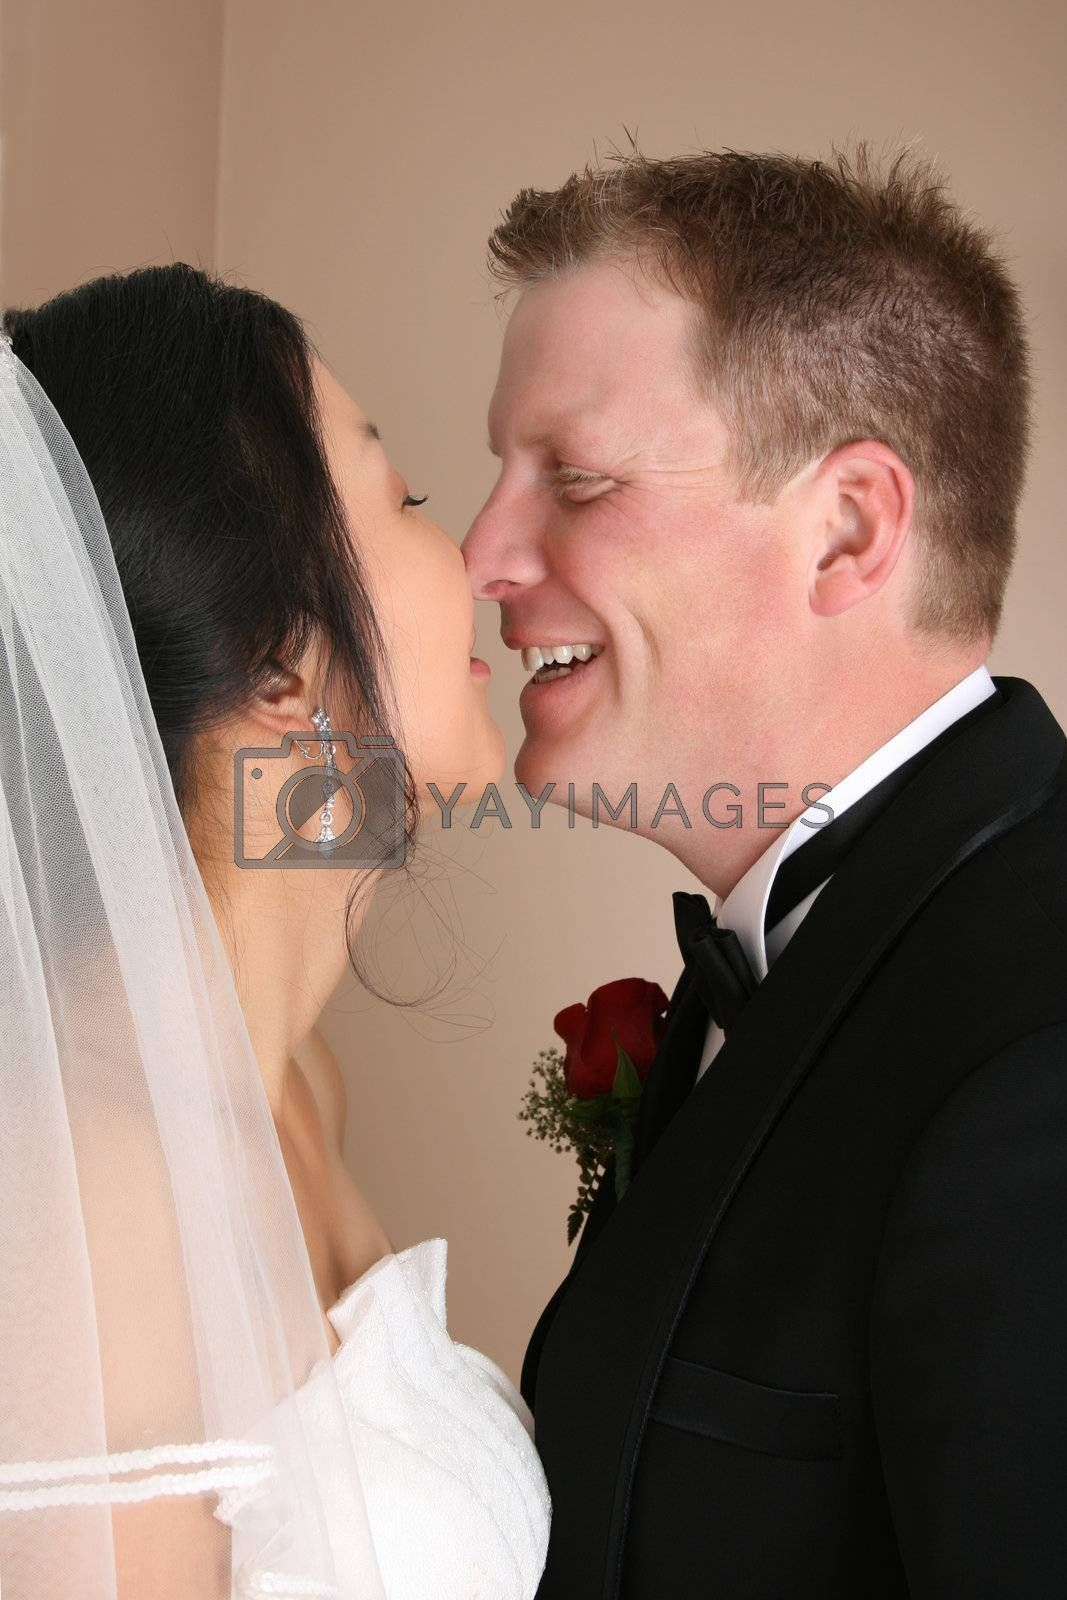 Bridal couple with their faces close together